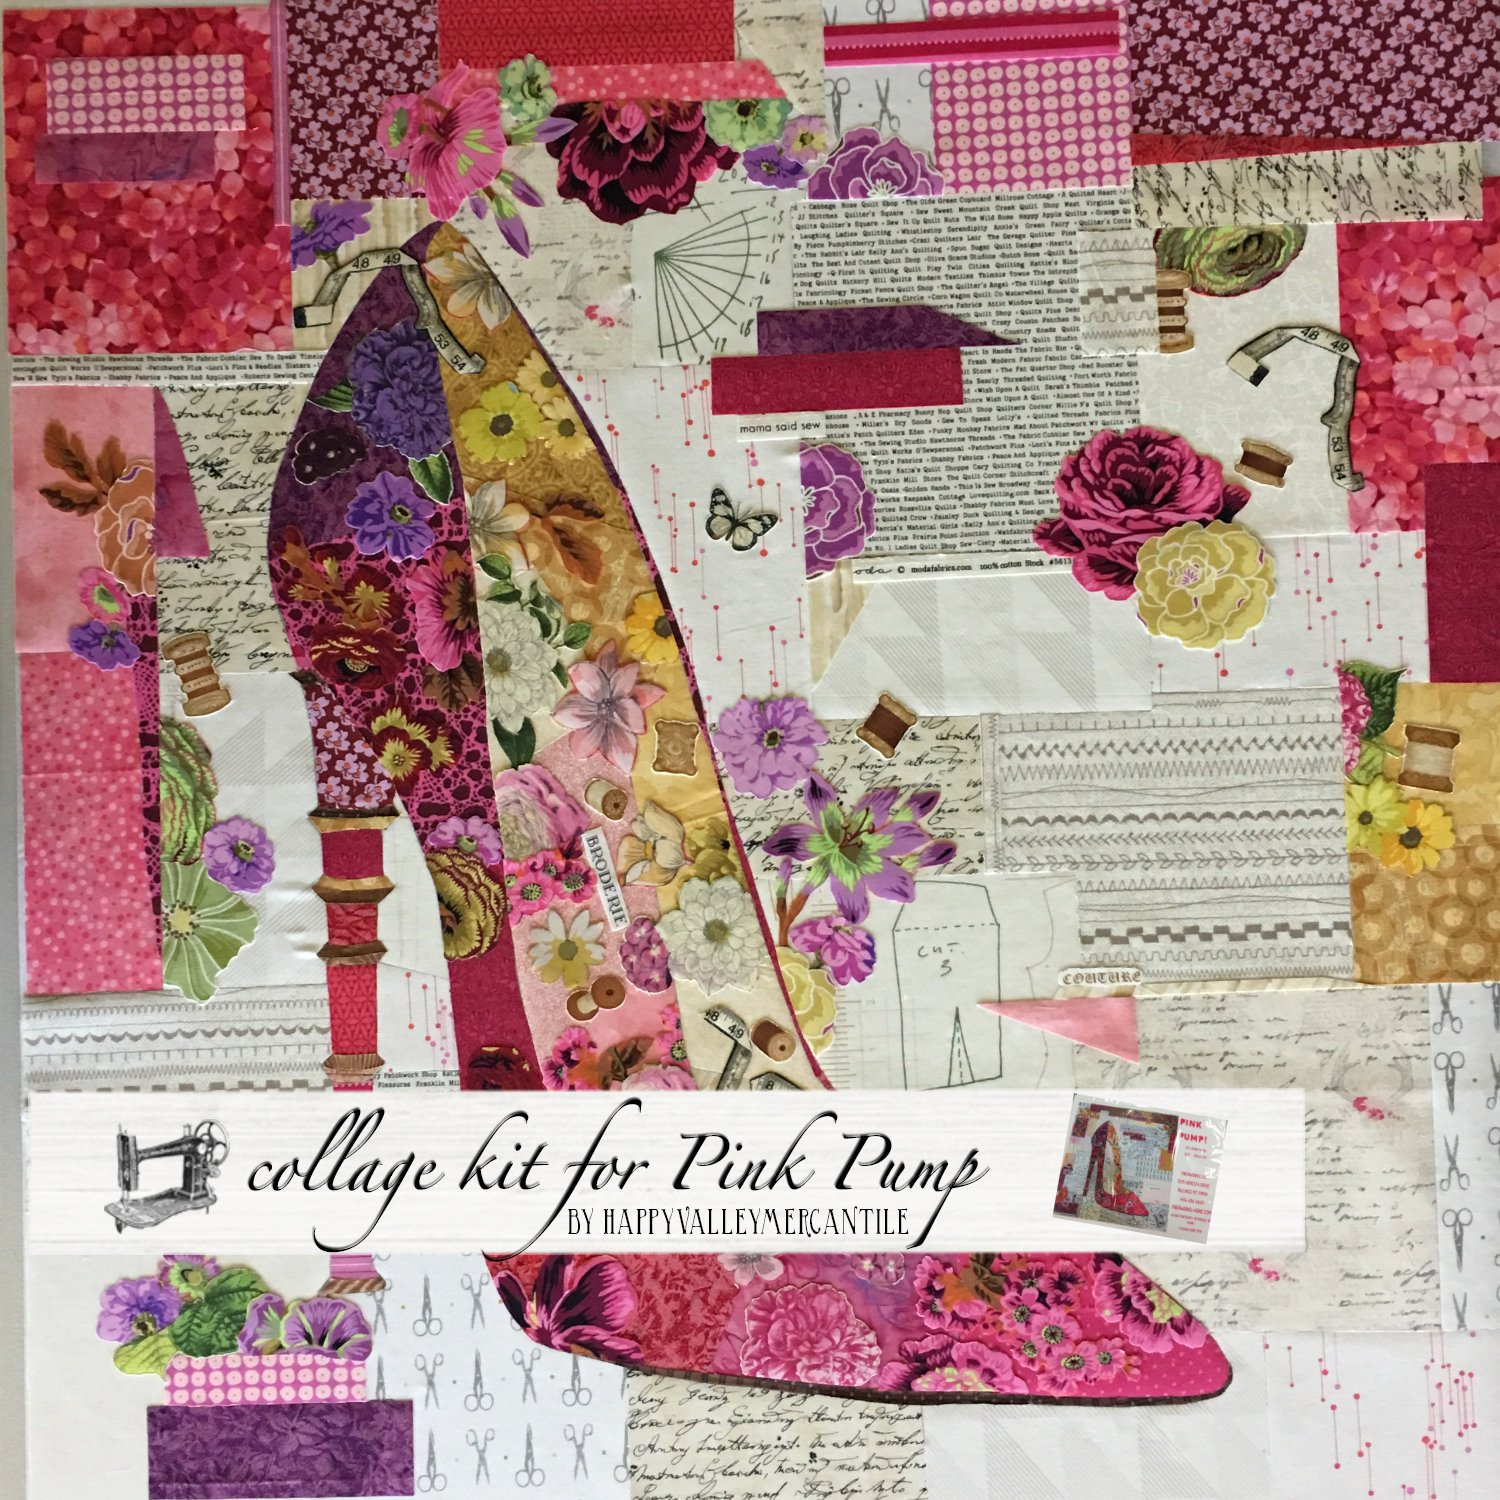 Pink pump collage quilt - kit